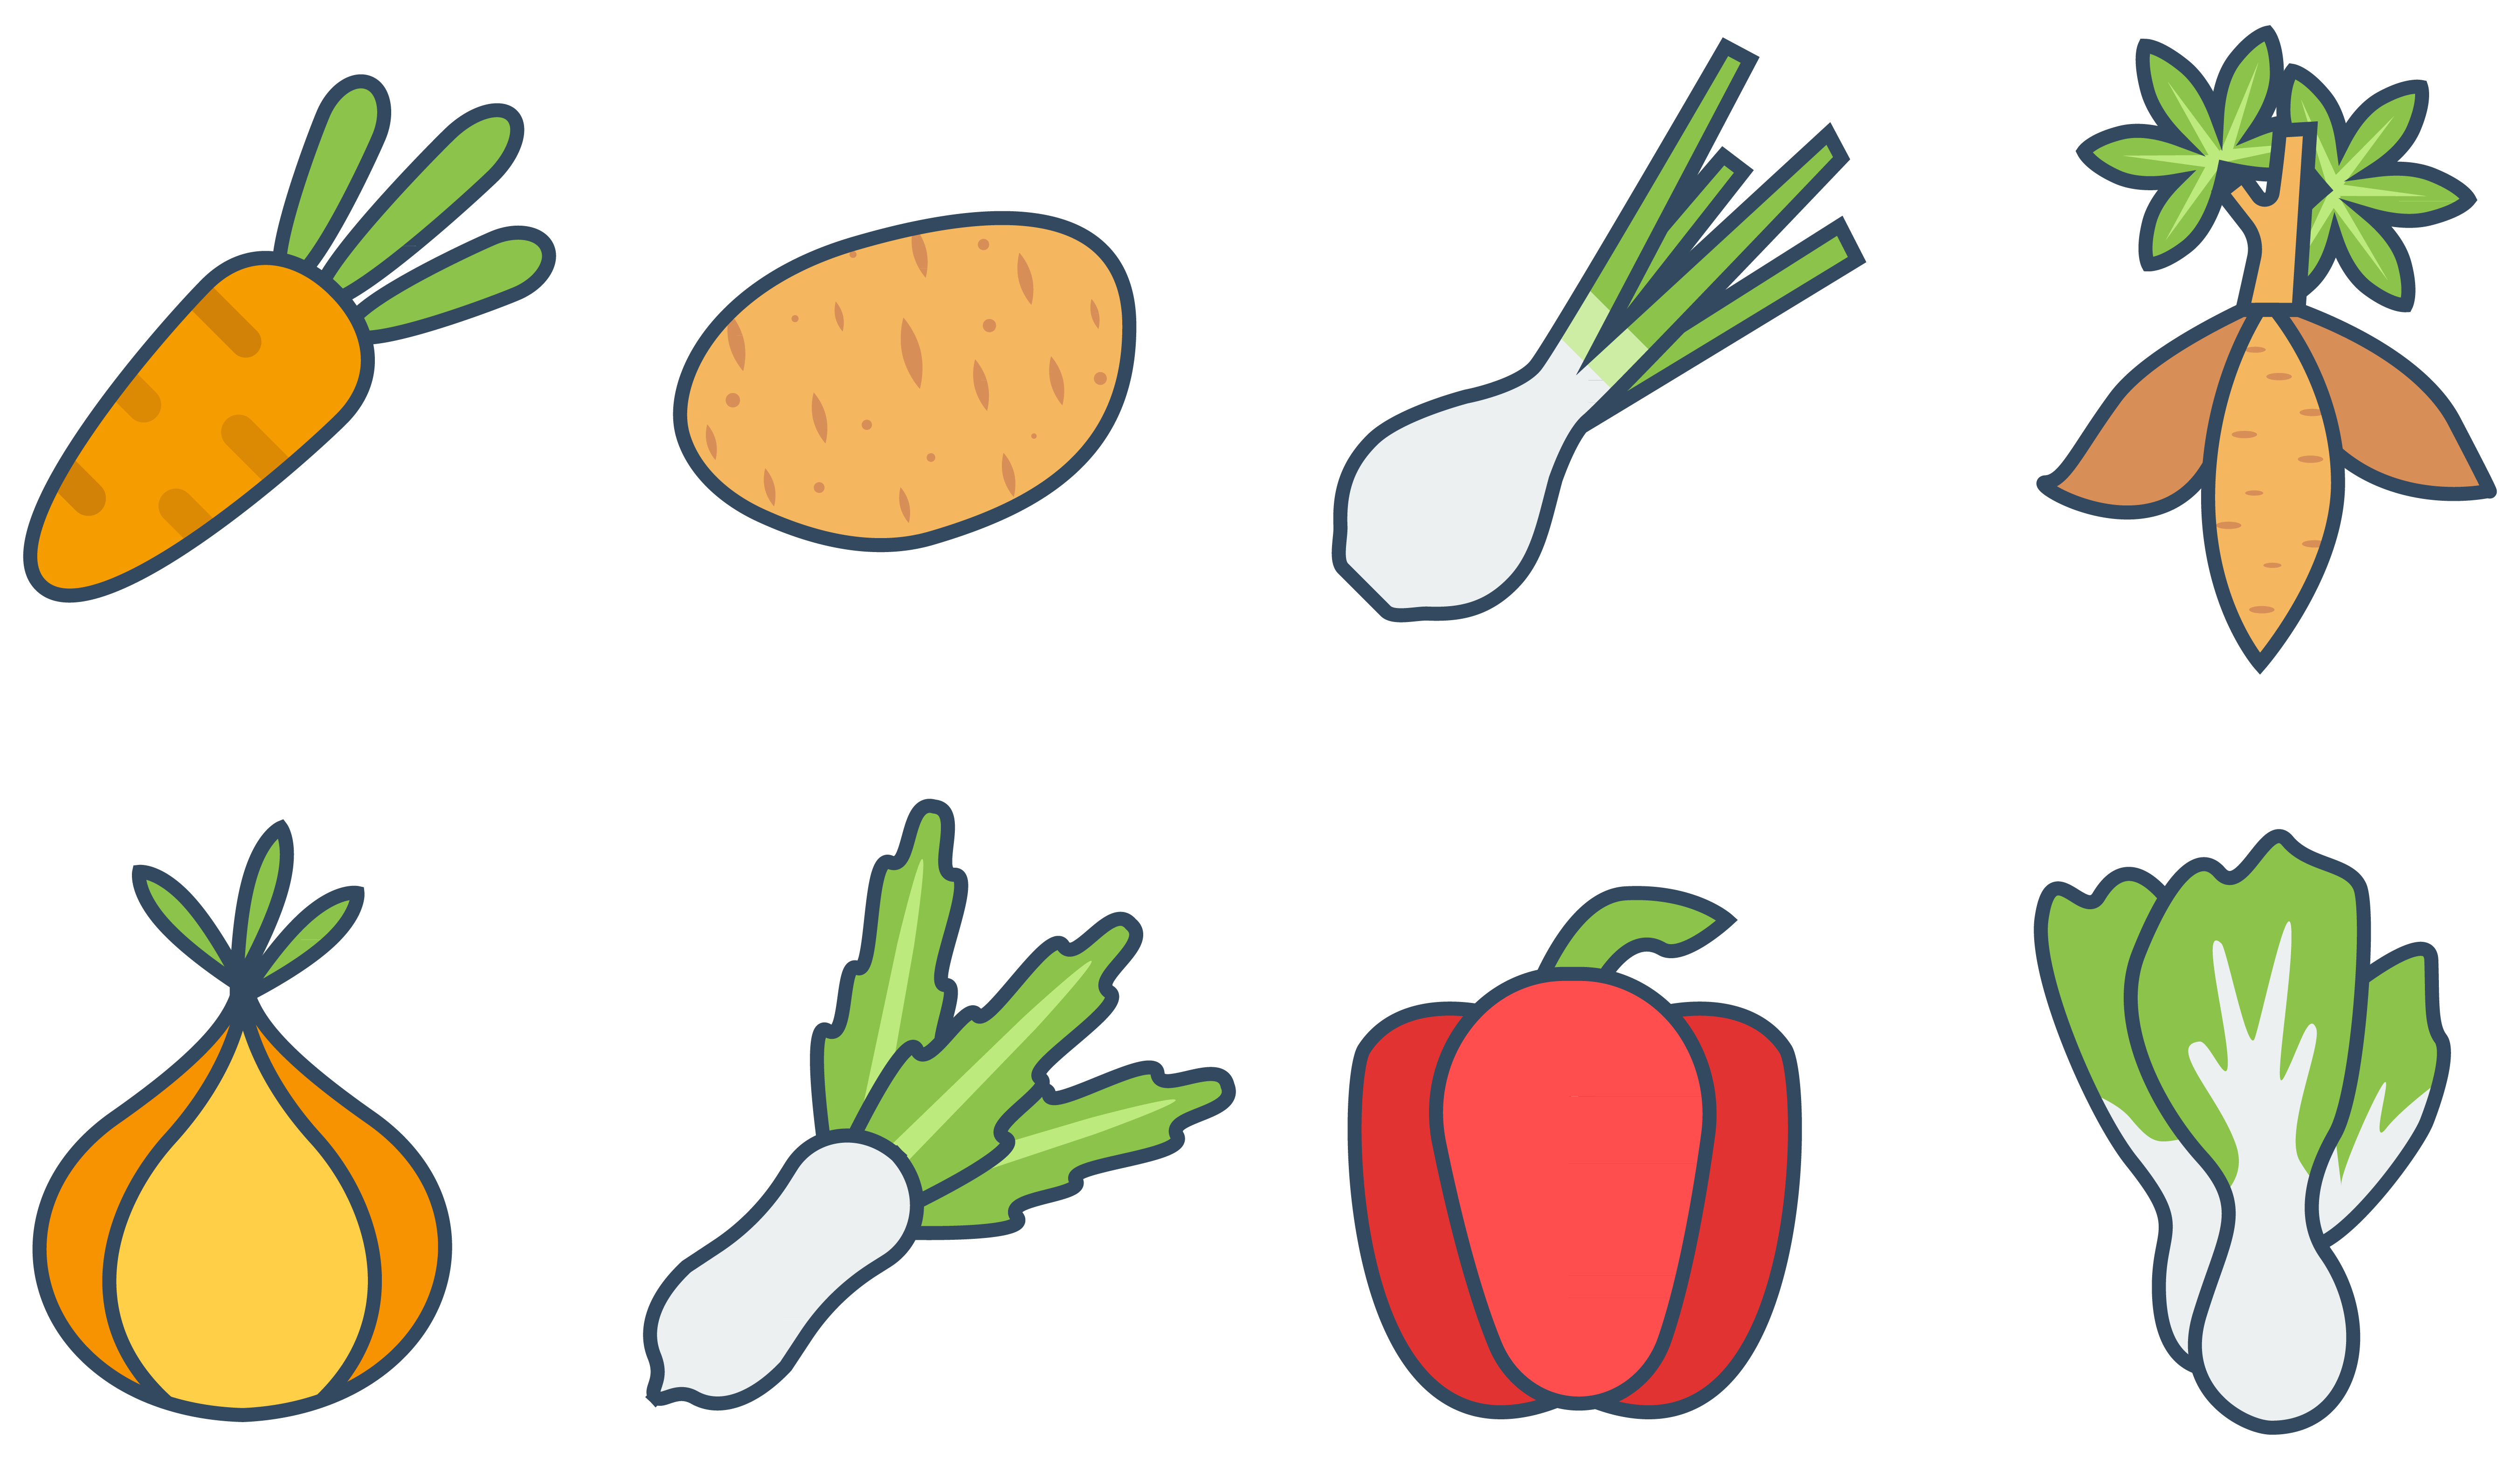 svg royalty free stock Good clipart nutritious food. Clip art sweet natural